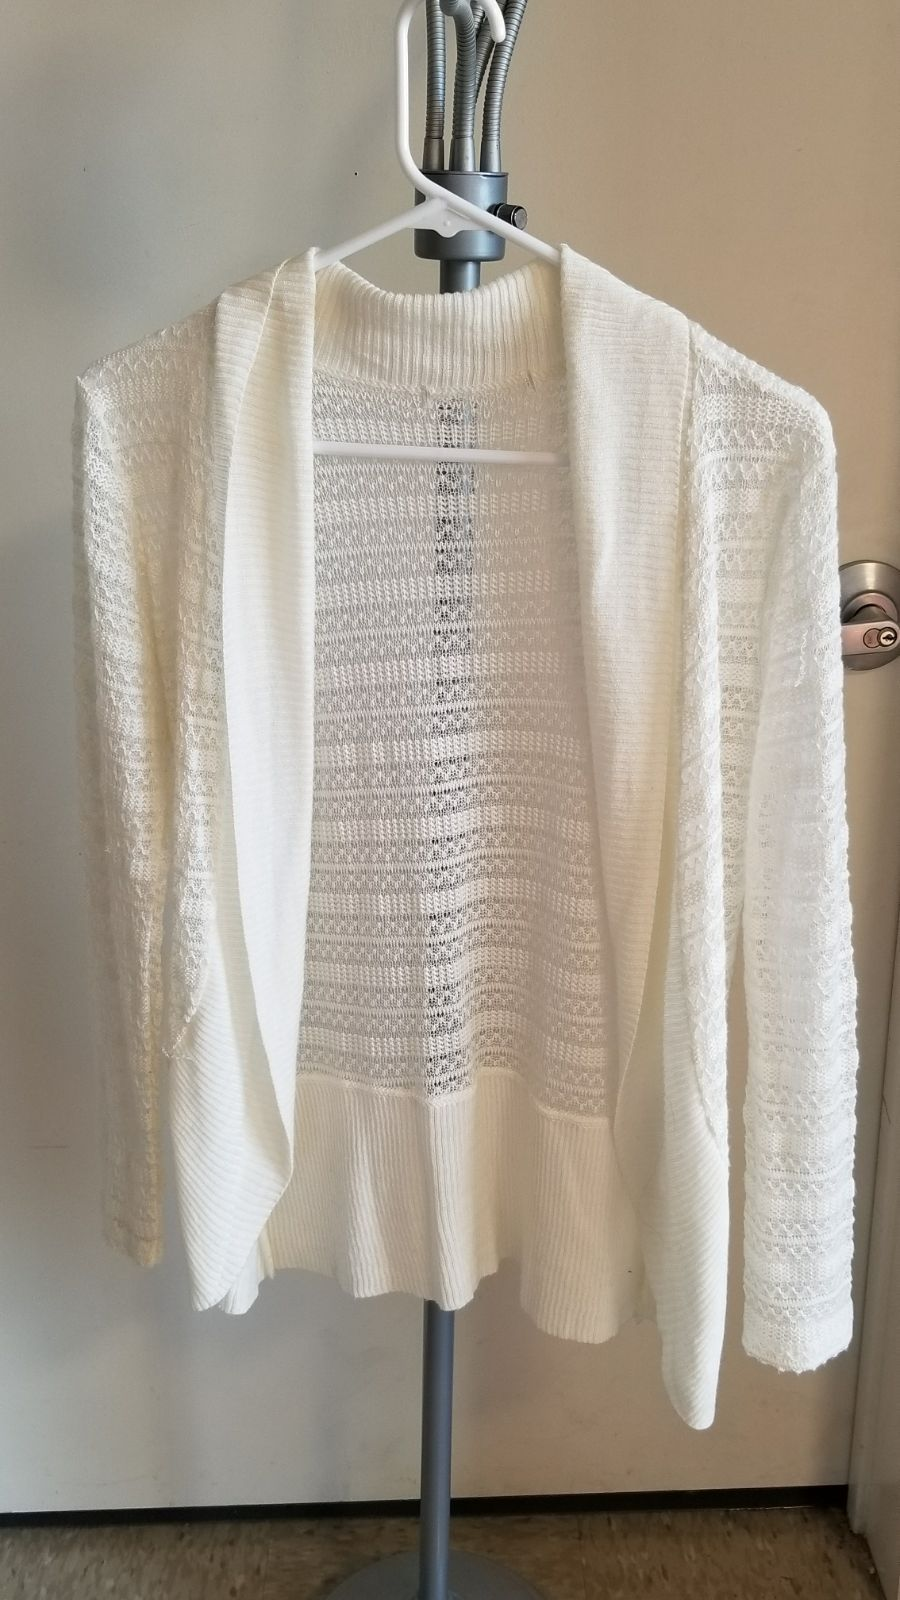 Cream lace cardigan - Mercari: BUY & SELL THINGS YOU LOVE